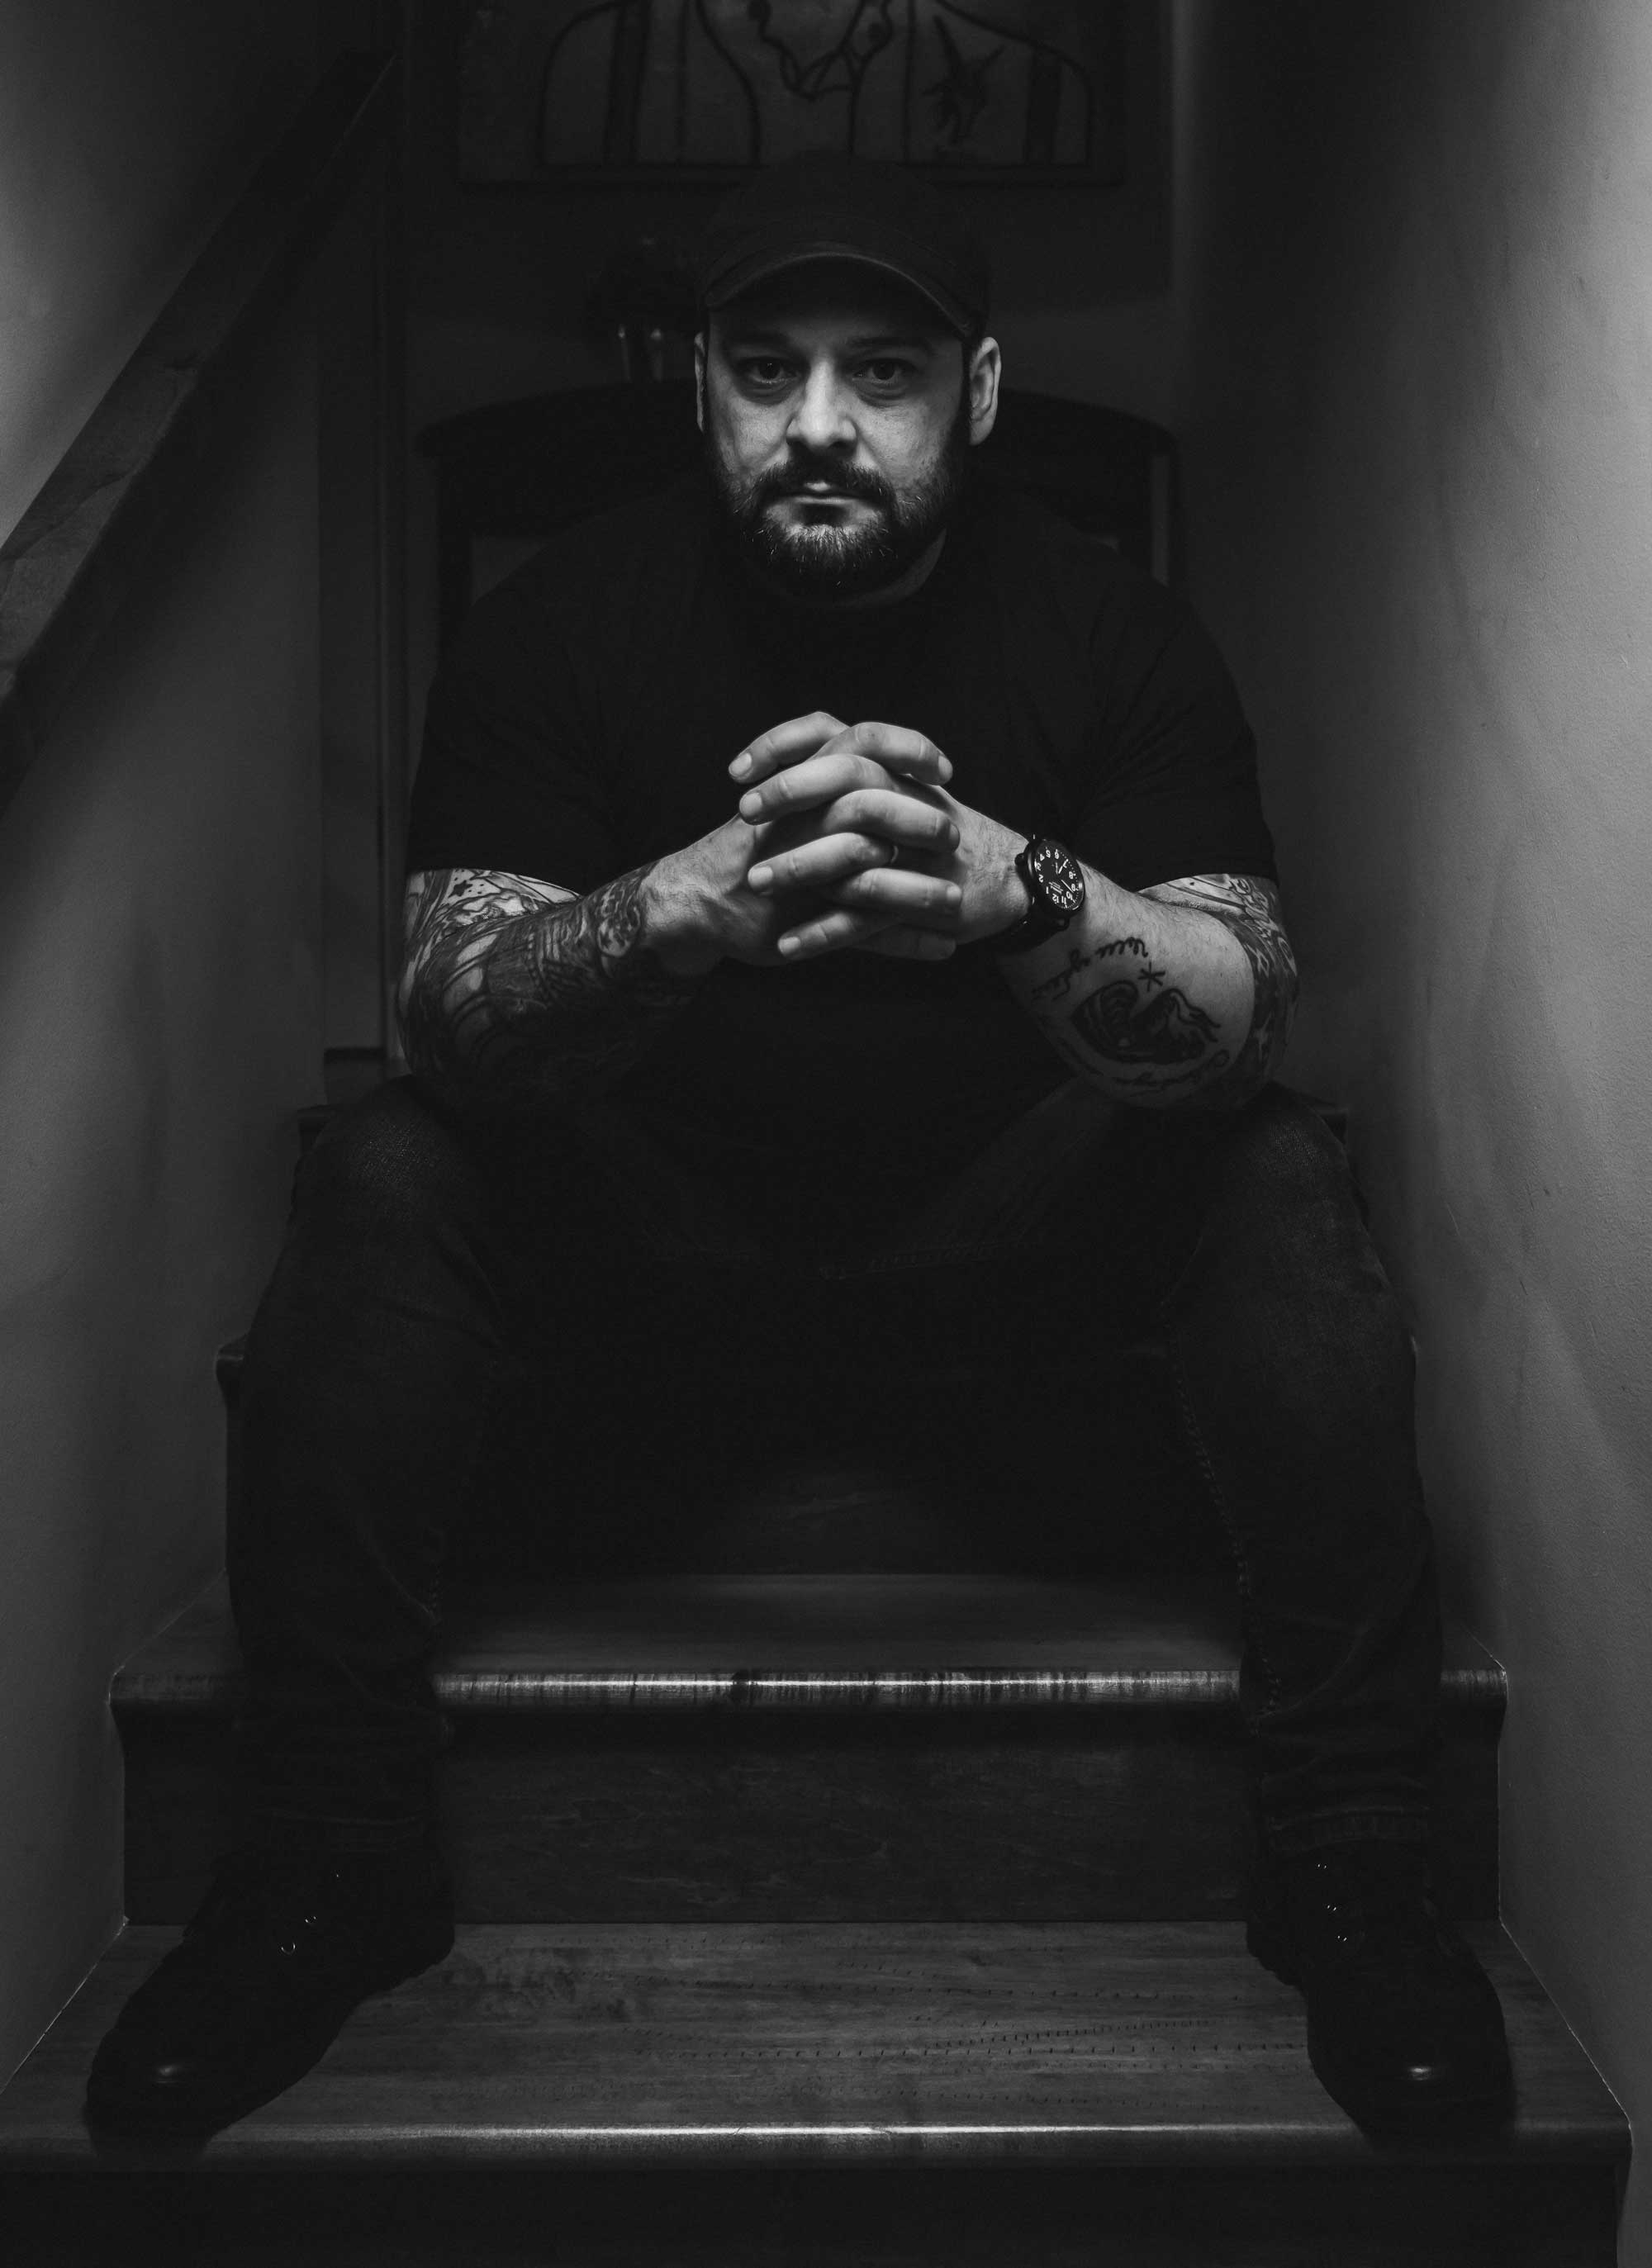 Christian Picciolini Biography